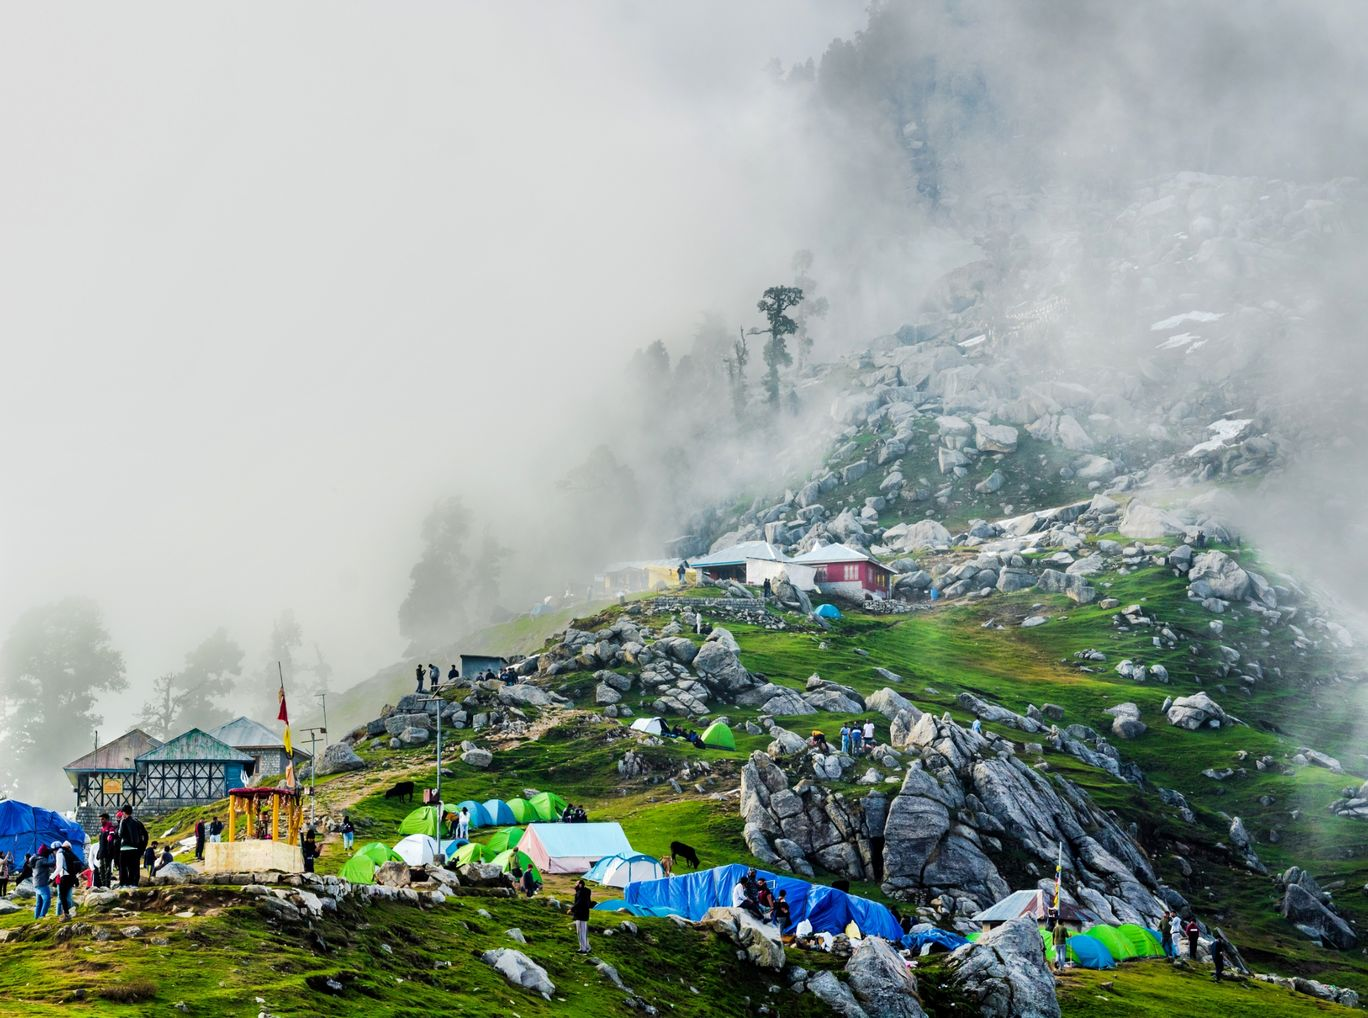 Photo of Triund By Sachin Ghai